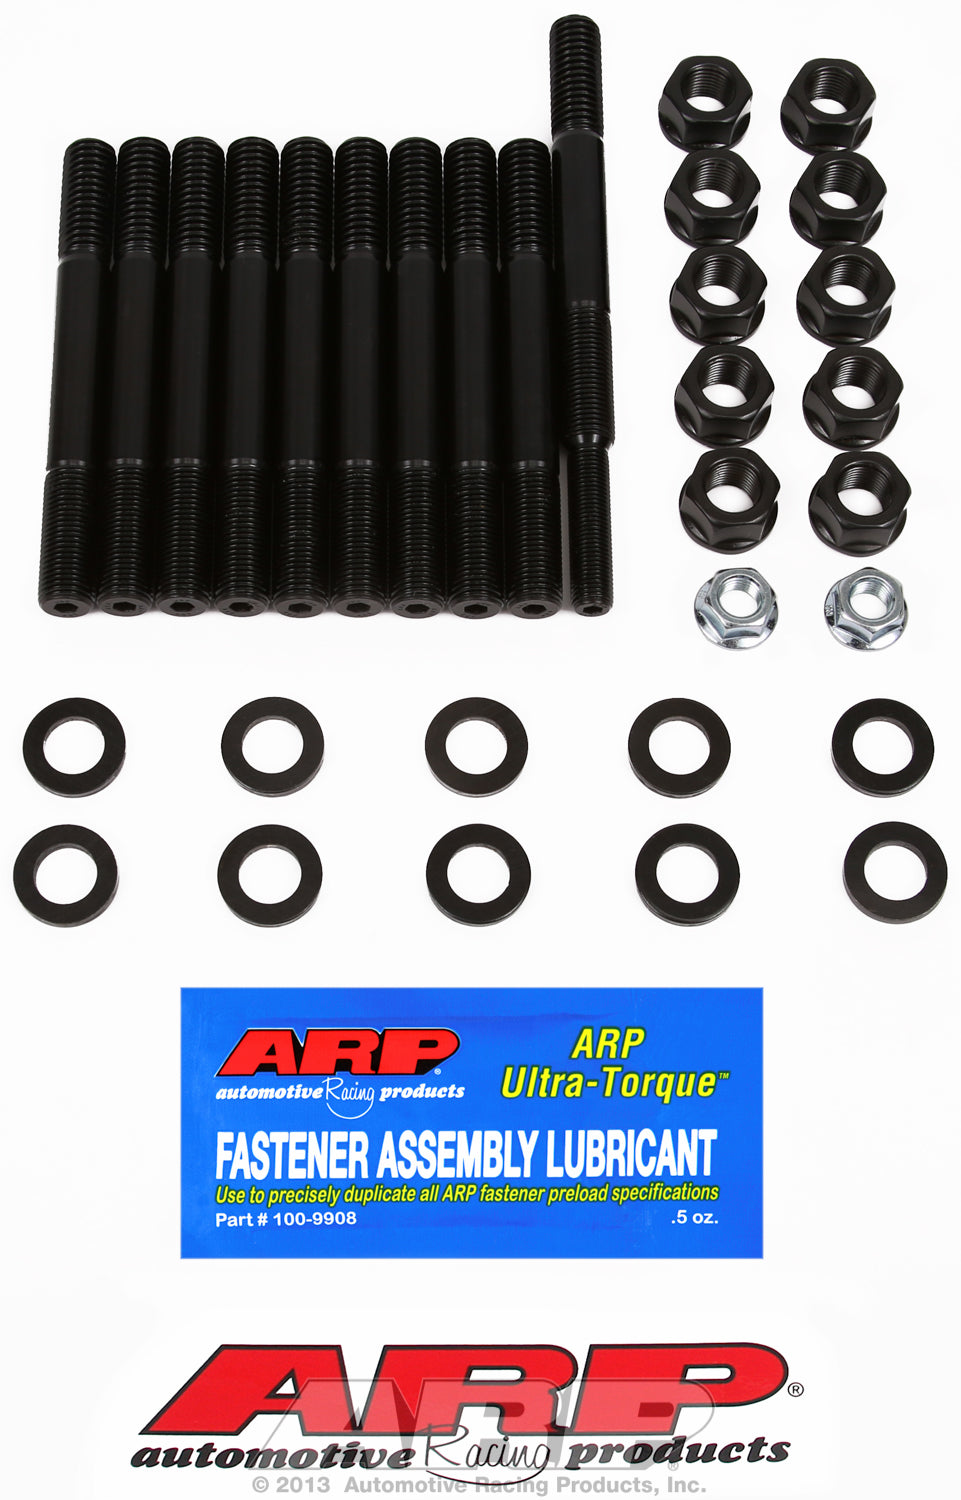 Main Stud Kit for Ford 351 Windsor with dual or rear sump oil pan*